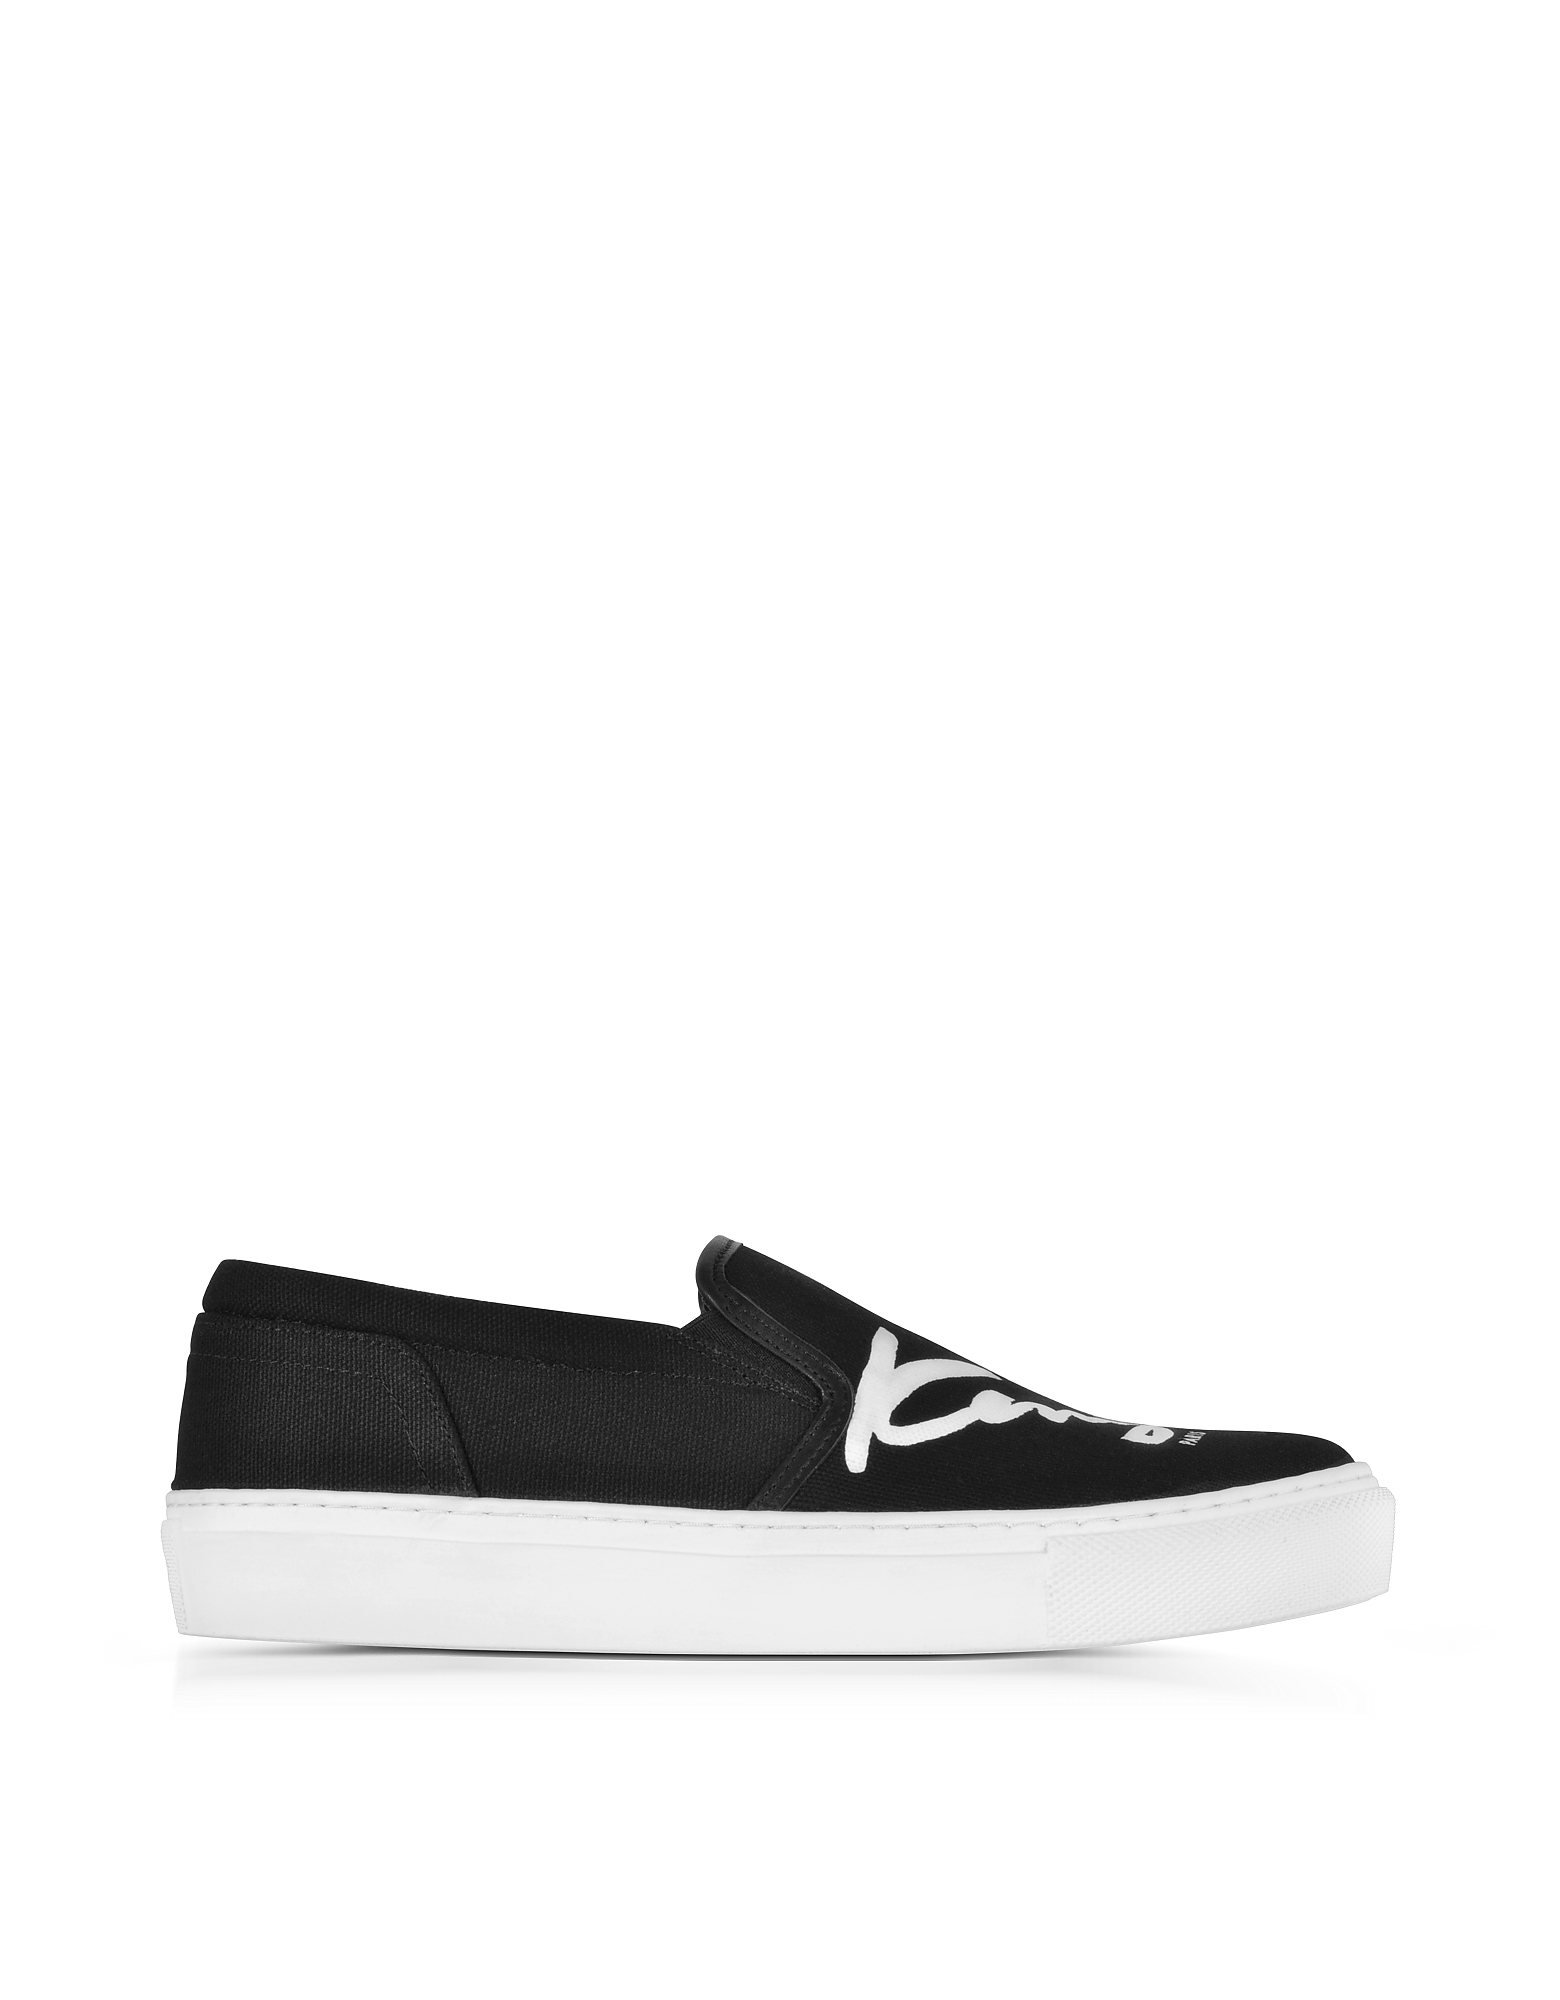 Kenzo Shoes, Kenzo Signature Slip on Sneakers